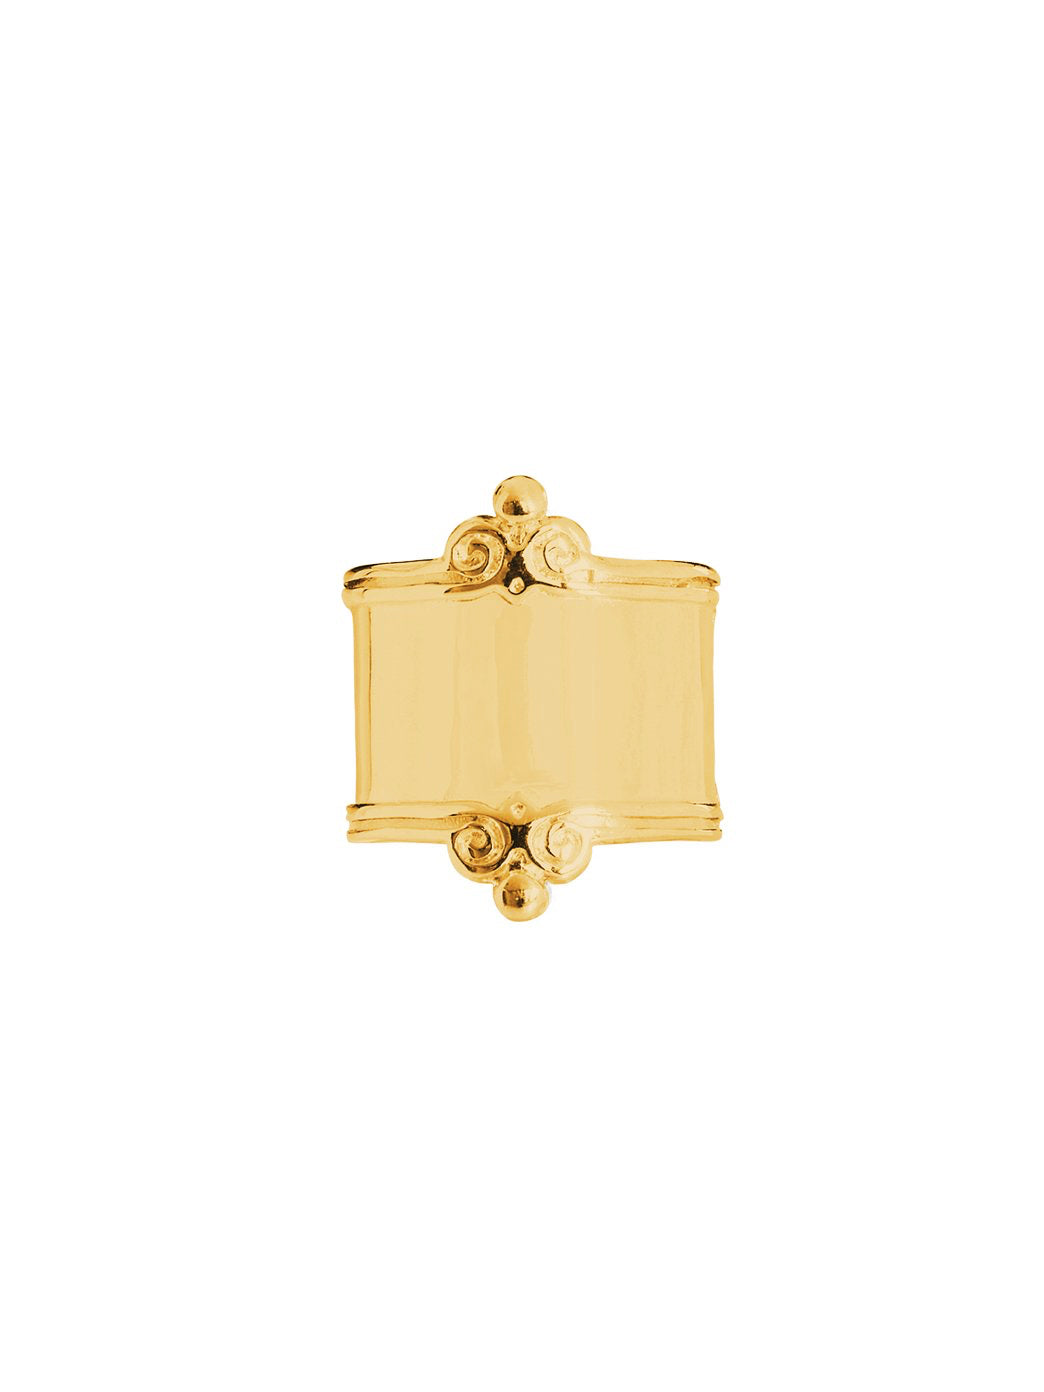 Fiorina Jewellery Gold Scroll Ring